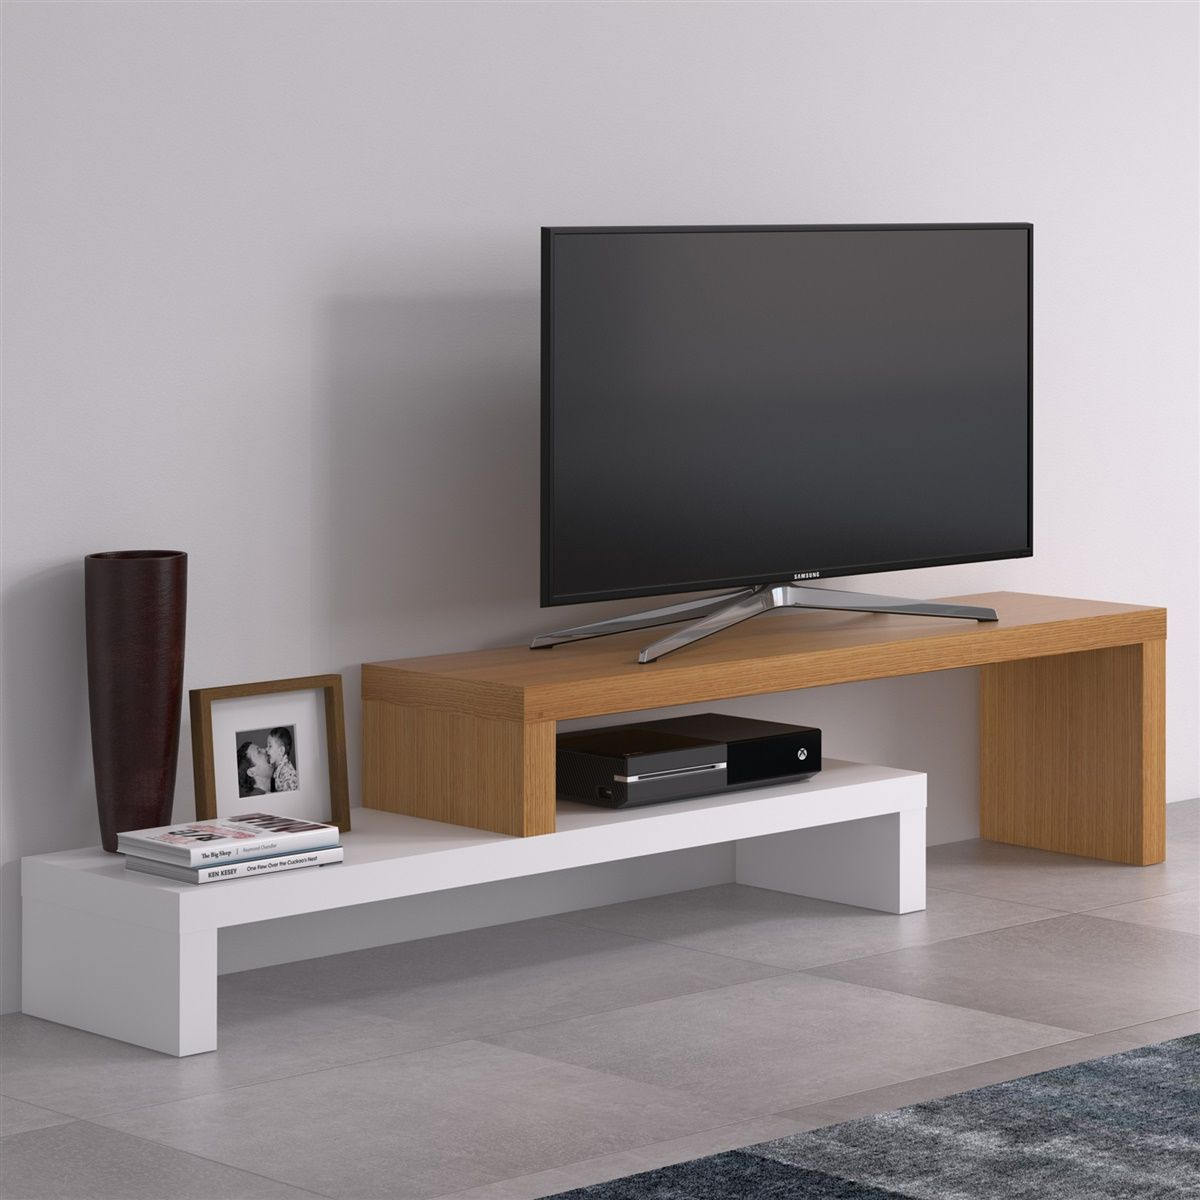 Cliff 120 Tv Bench In 2020 Furniture Tv Stand Designs Tv Bench